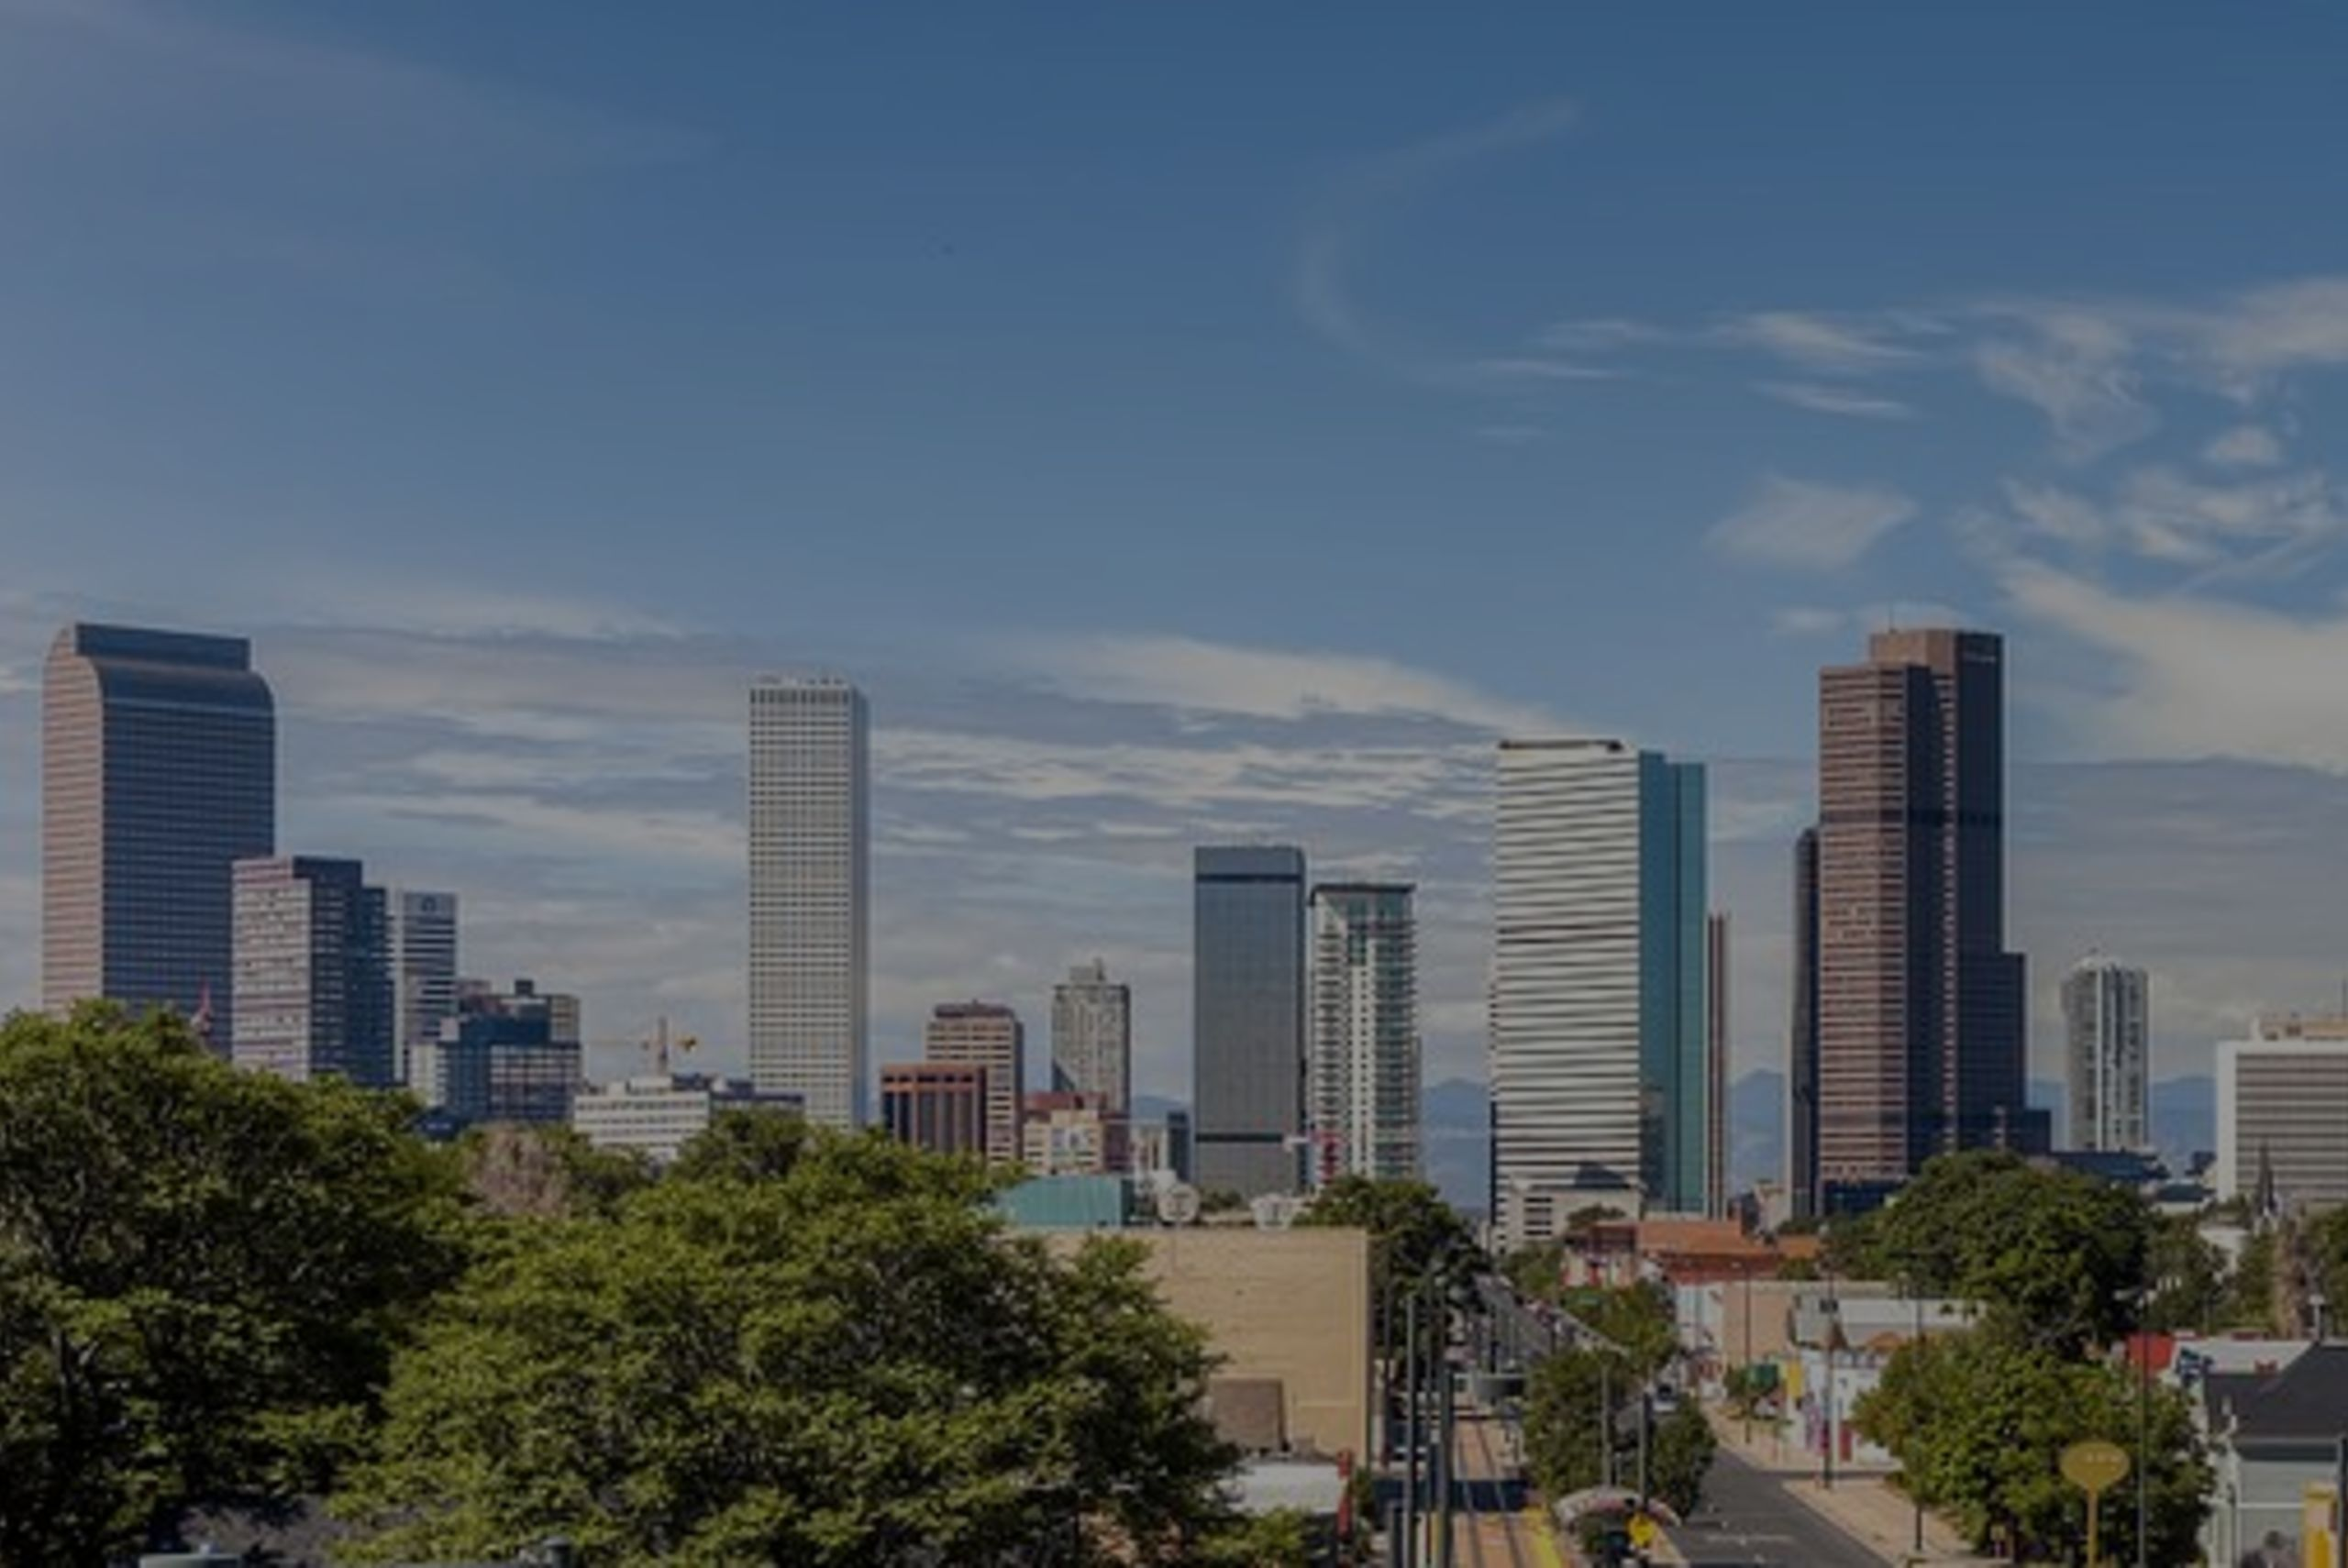 Denver Ranks Among the Best Cities for Commercial Real Estate Investment